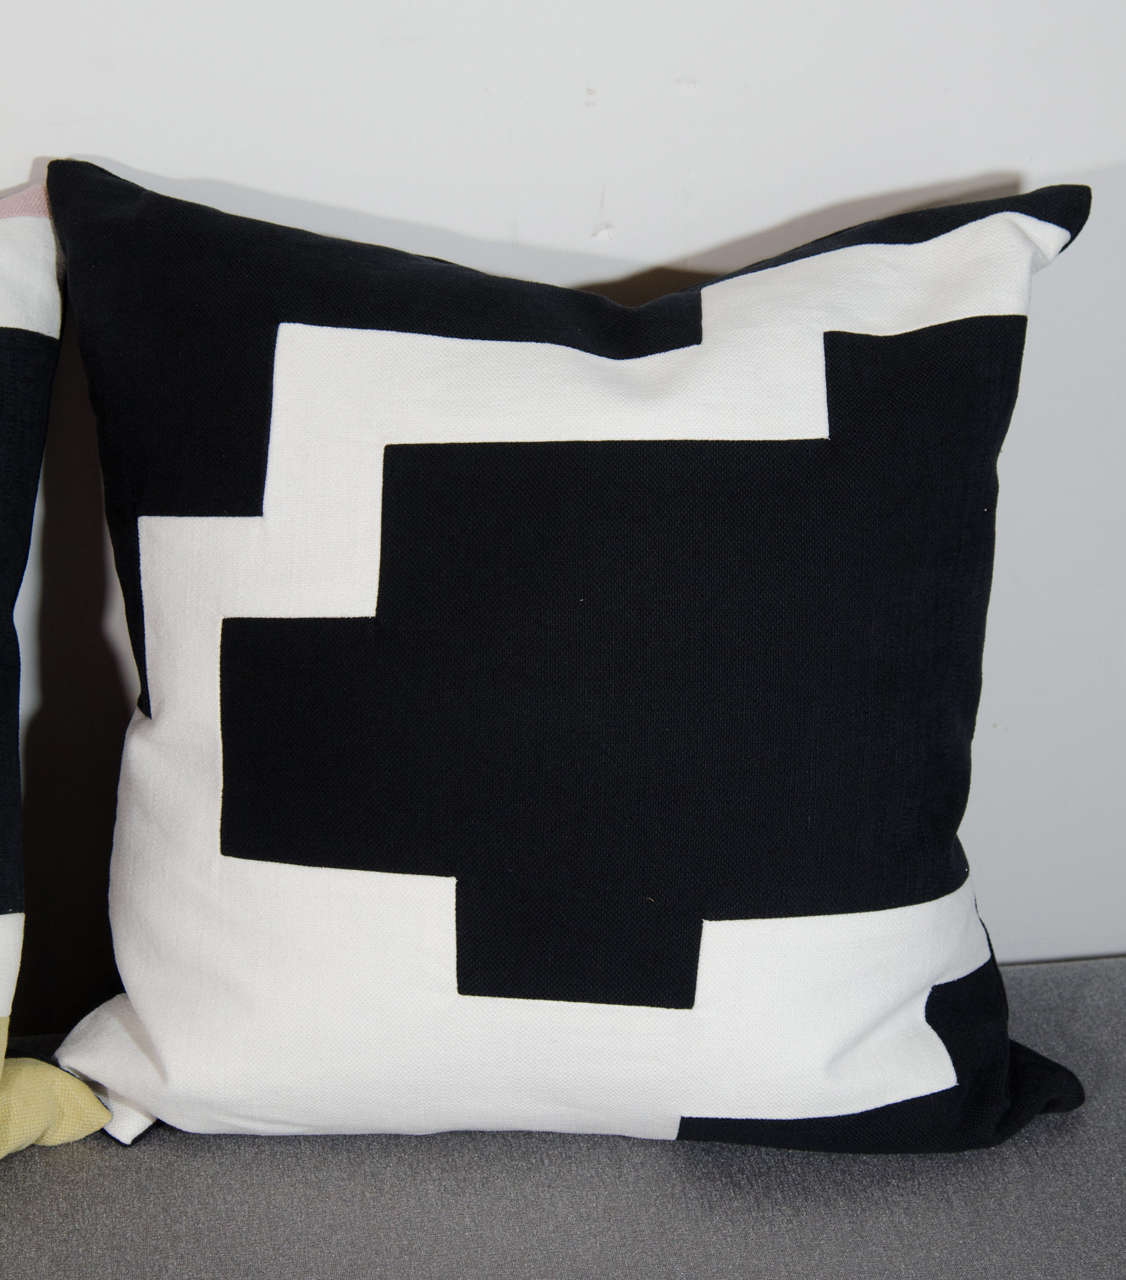 Architectural Italian Linen Throw Pillows by Arguello Casa In Excellent Condition For Sale In Stamford, CT